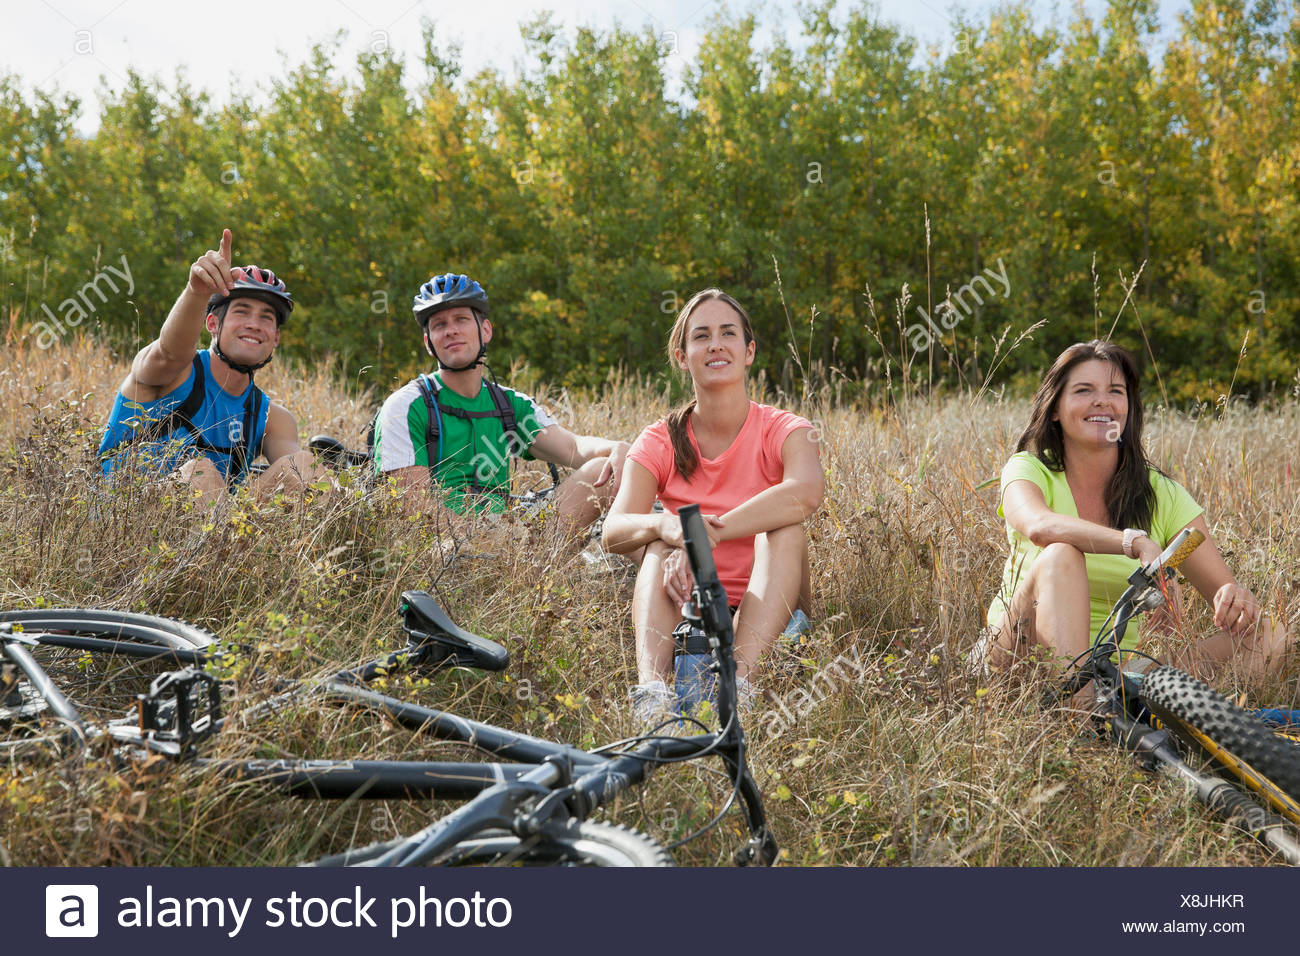 Four people relaxing in field with bikes. - Stock Image